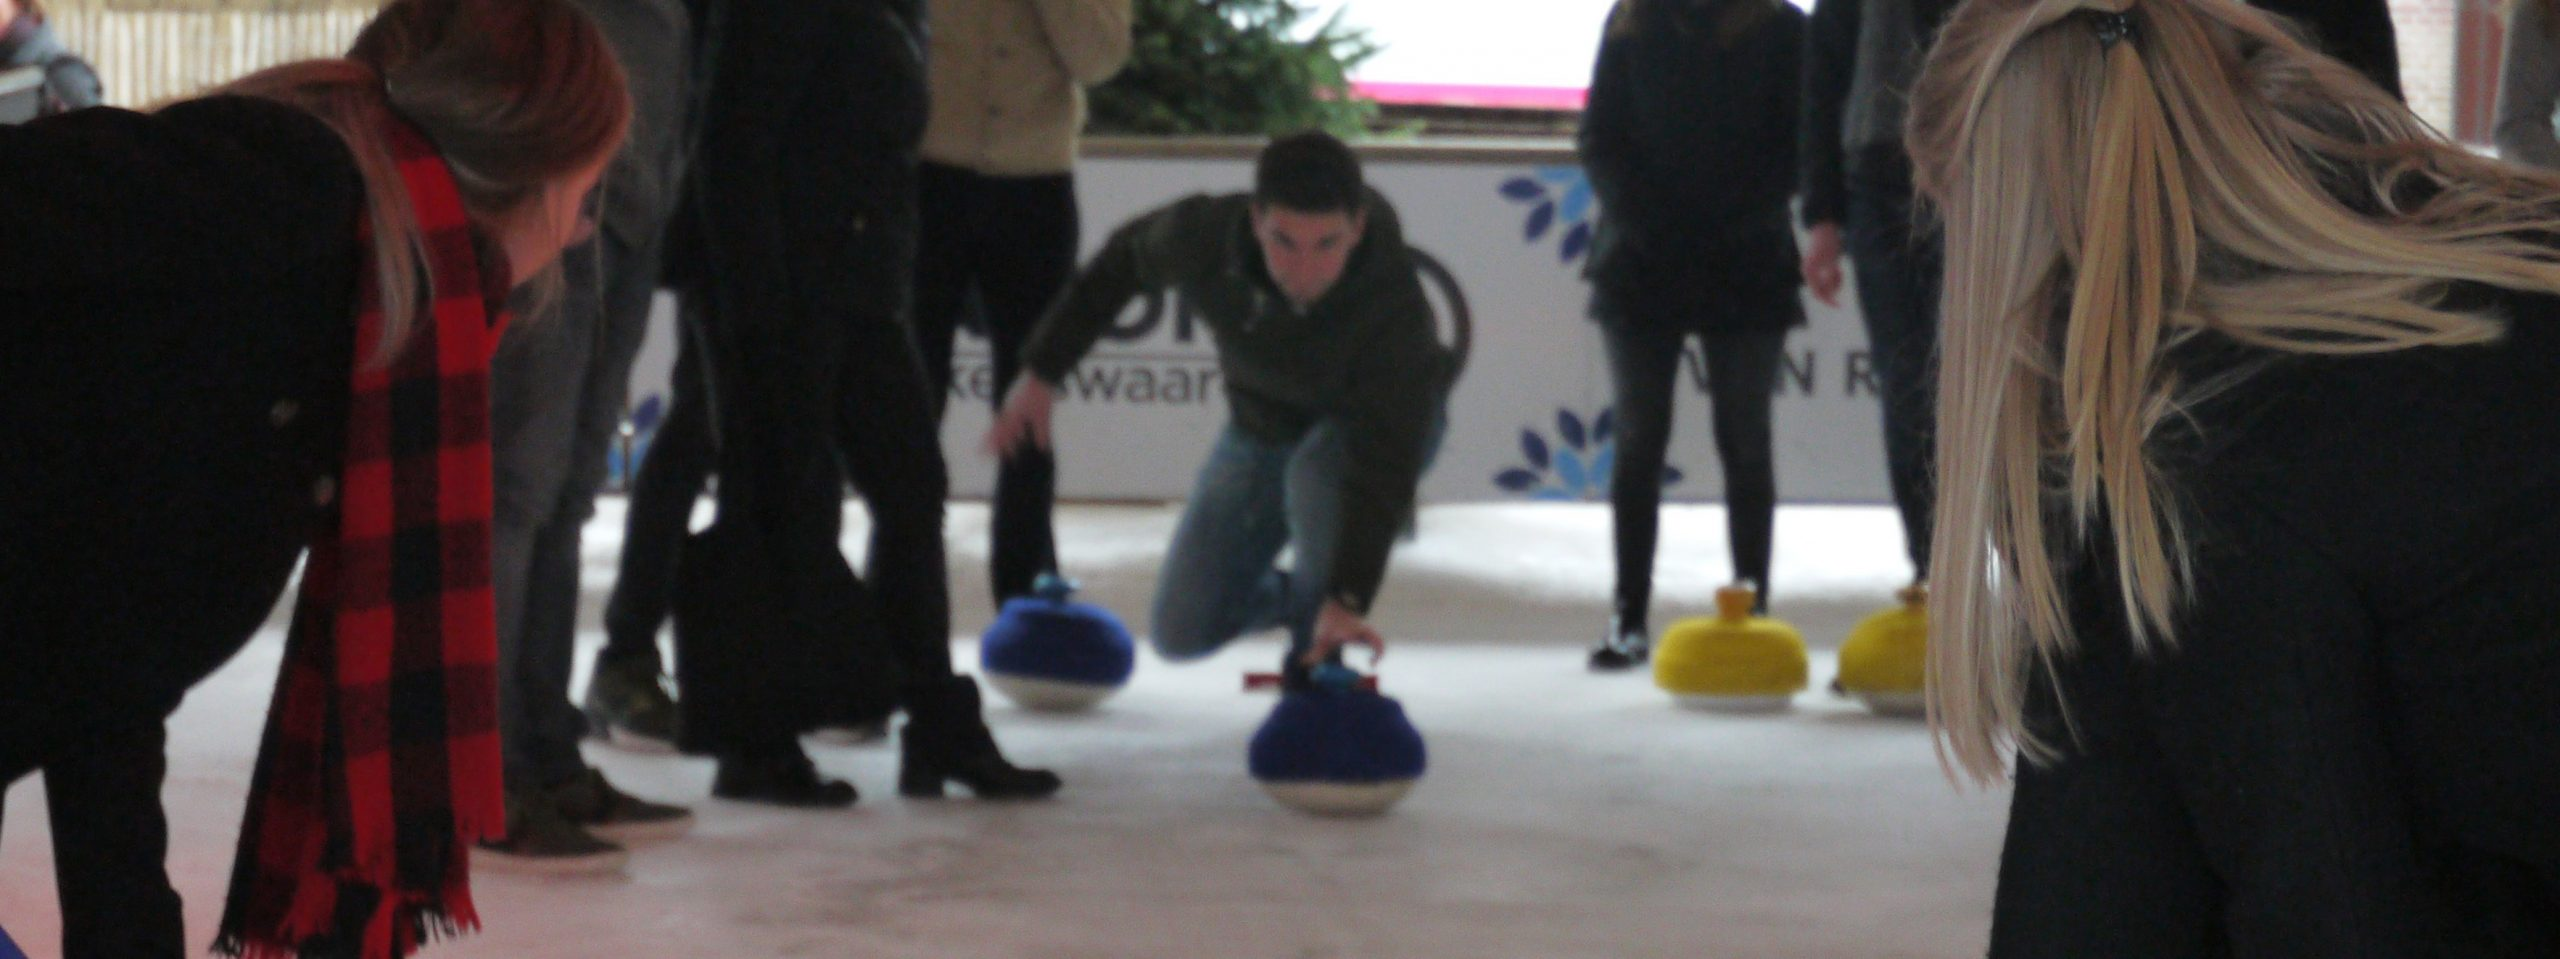 teamuitje-den-bosch-workshop-fun-curling